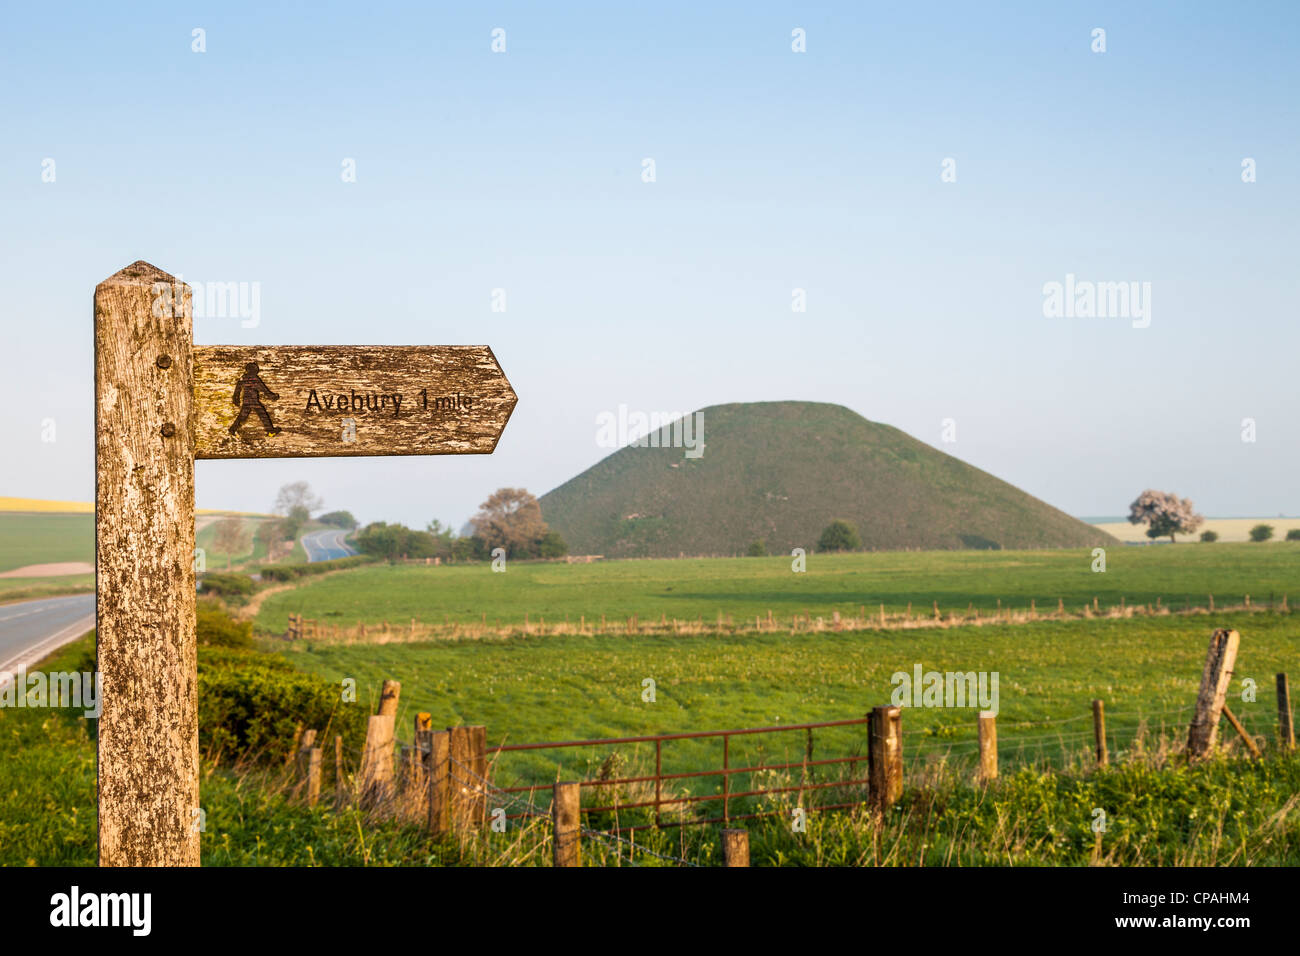 Signpost for footpath to Avebury in Wiltshire, with Silbury Hill, a Neolithic monument, in background. - Stock Image